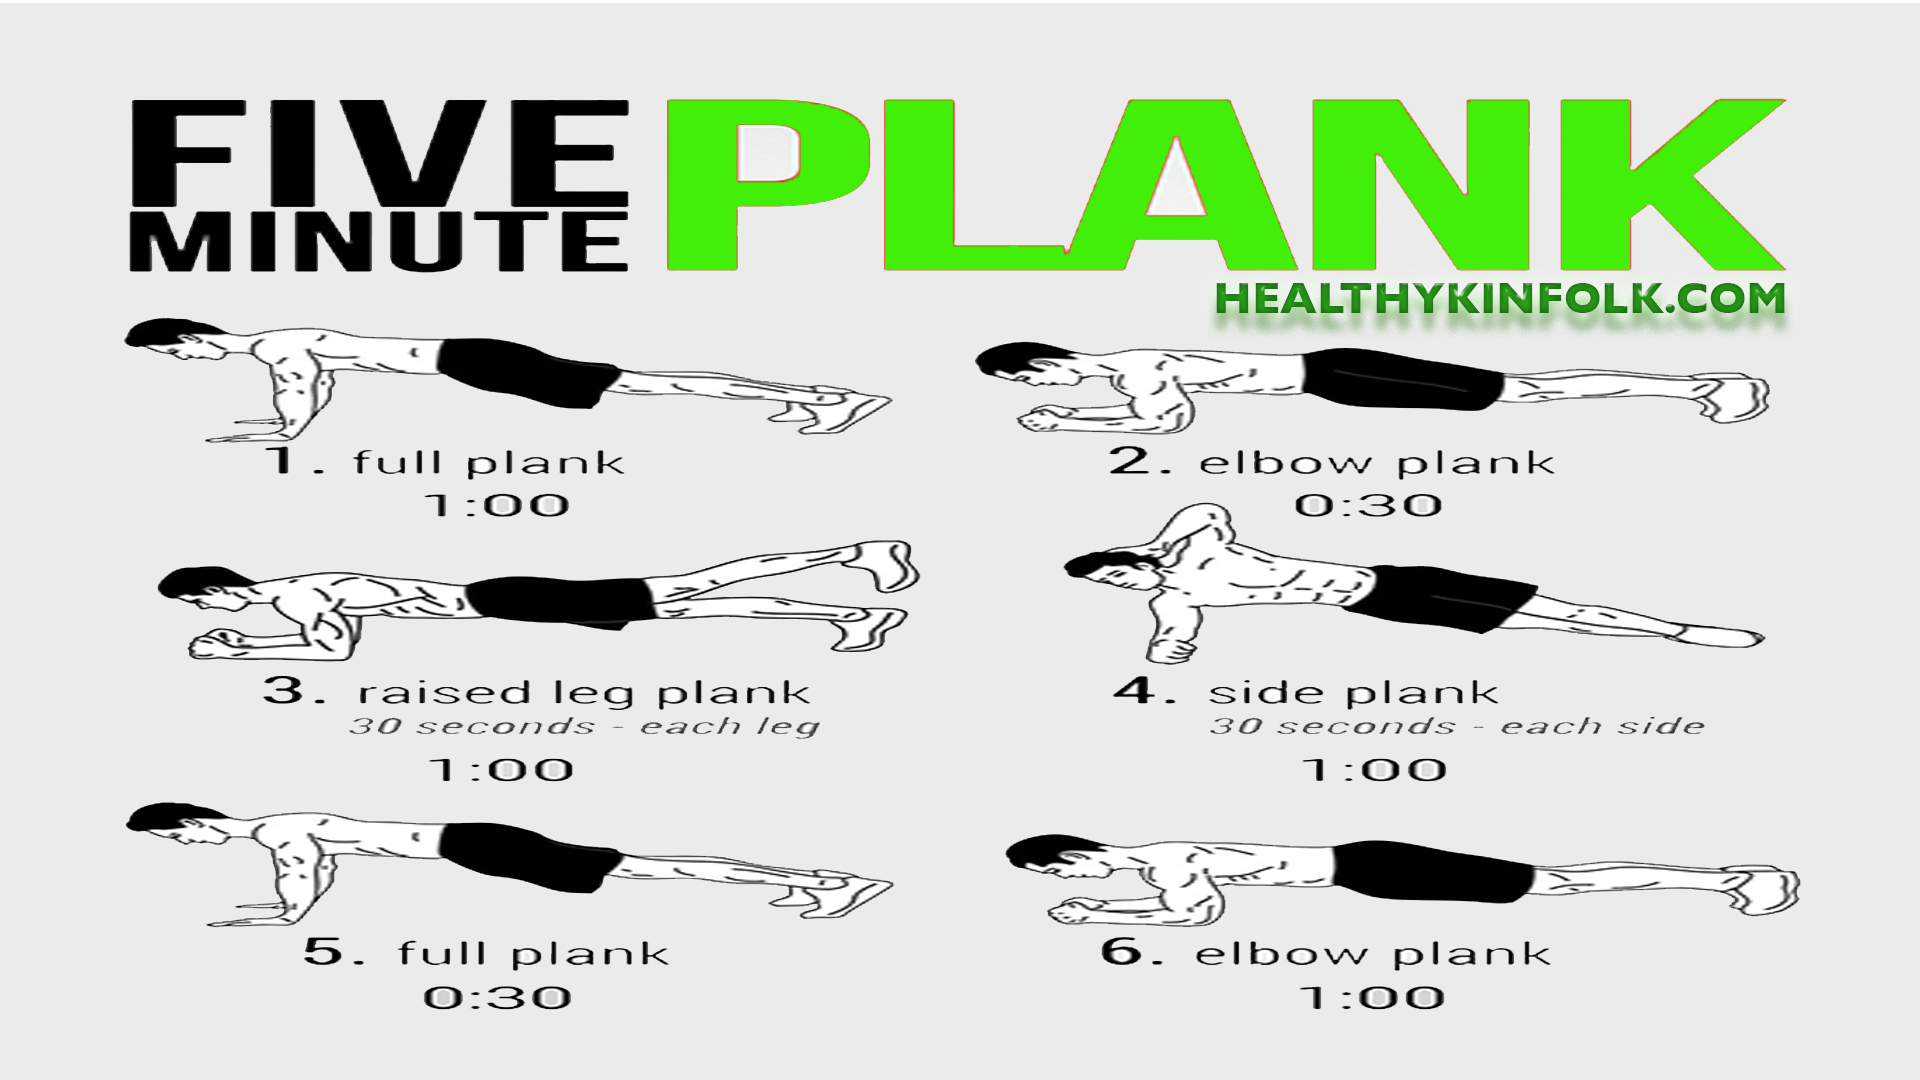 Fiveminuteplank Workout Routine